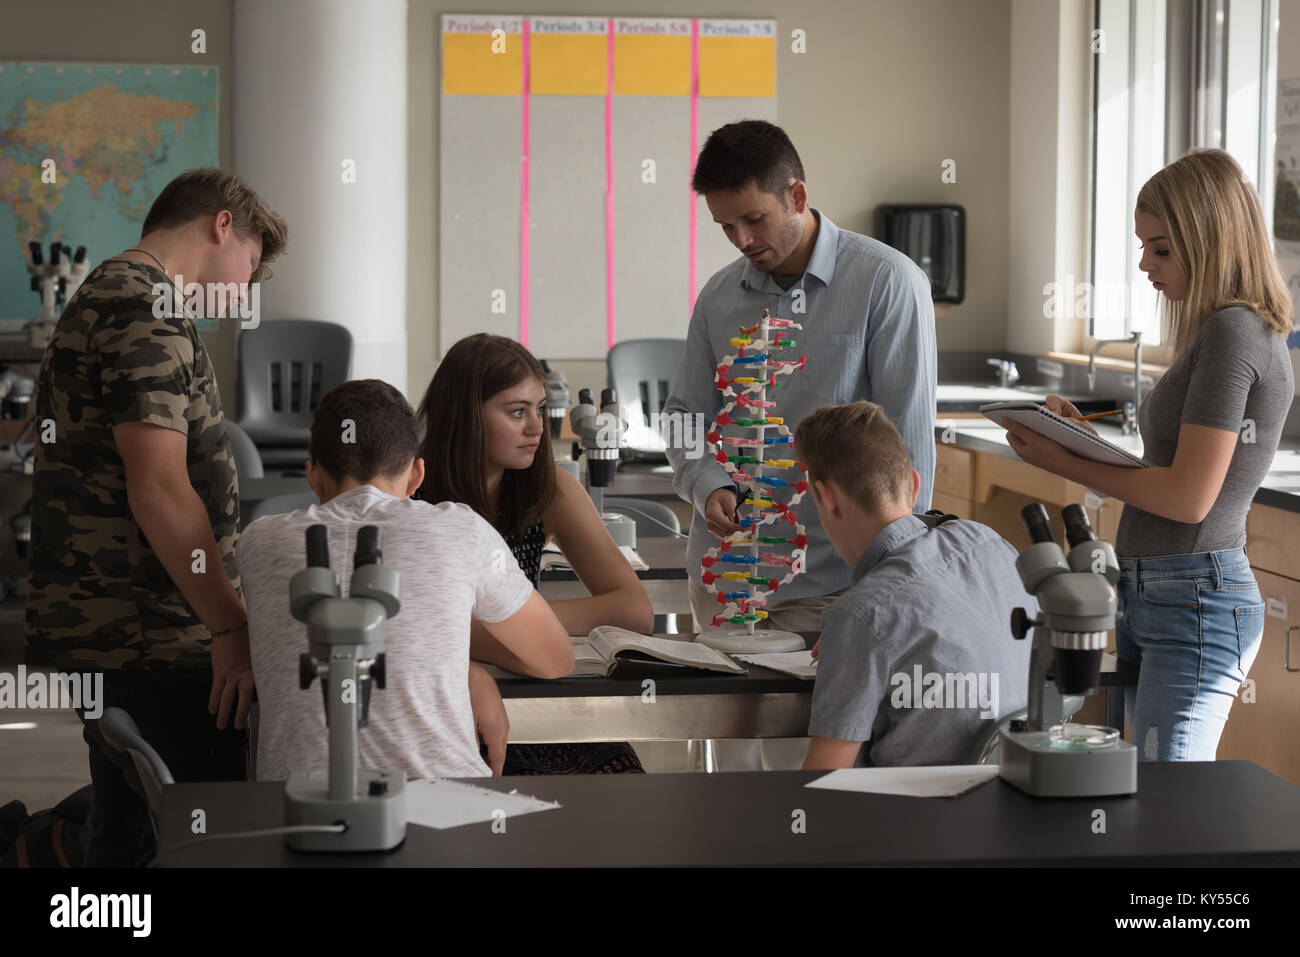 Teacher assisting students in experiment on molecule Stock Photo